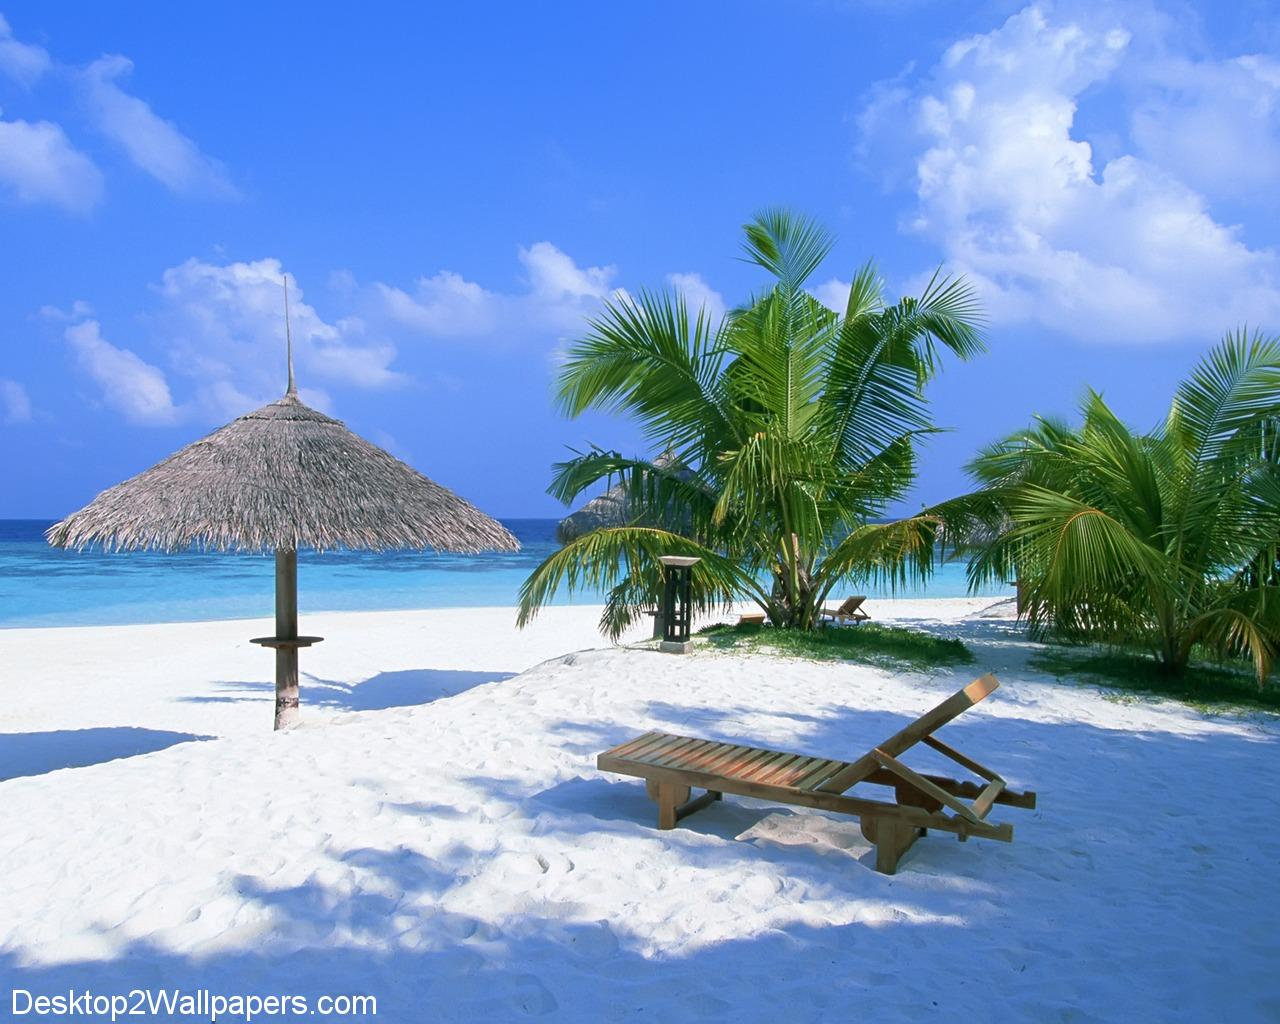 Paradise Wallpaper Desktop 10900 Hd Wallpapers in Beach   Imagescicom 1280x1024